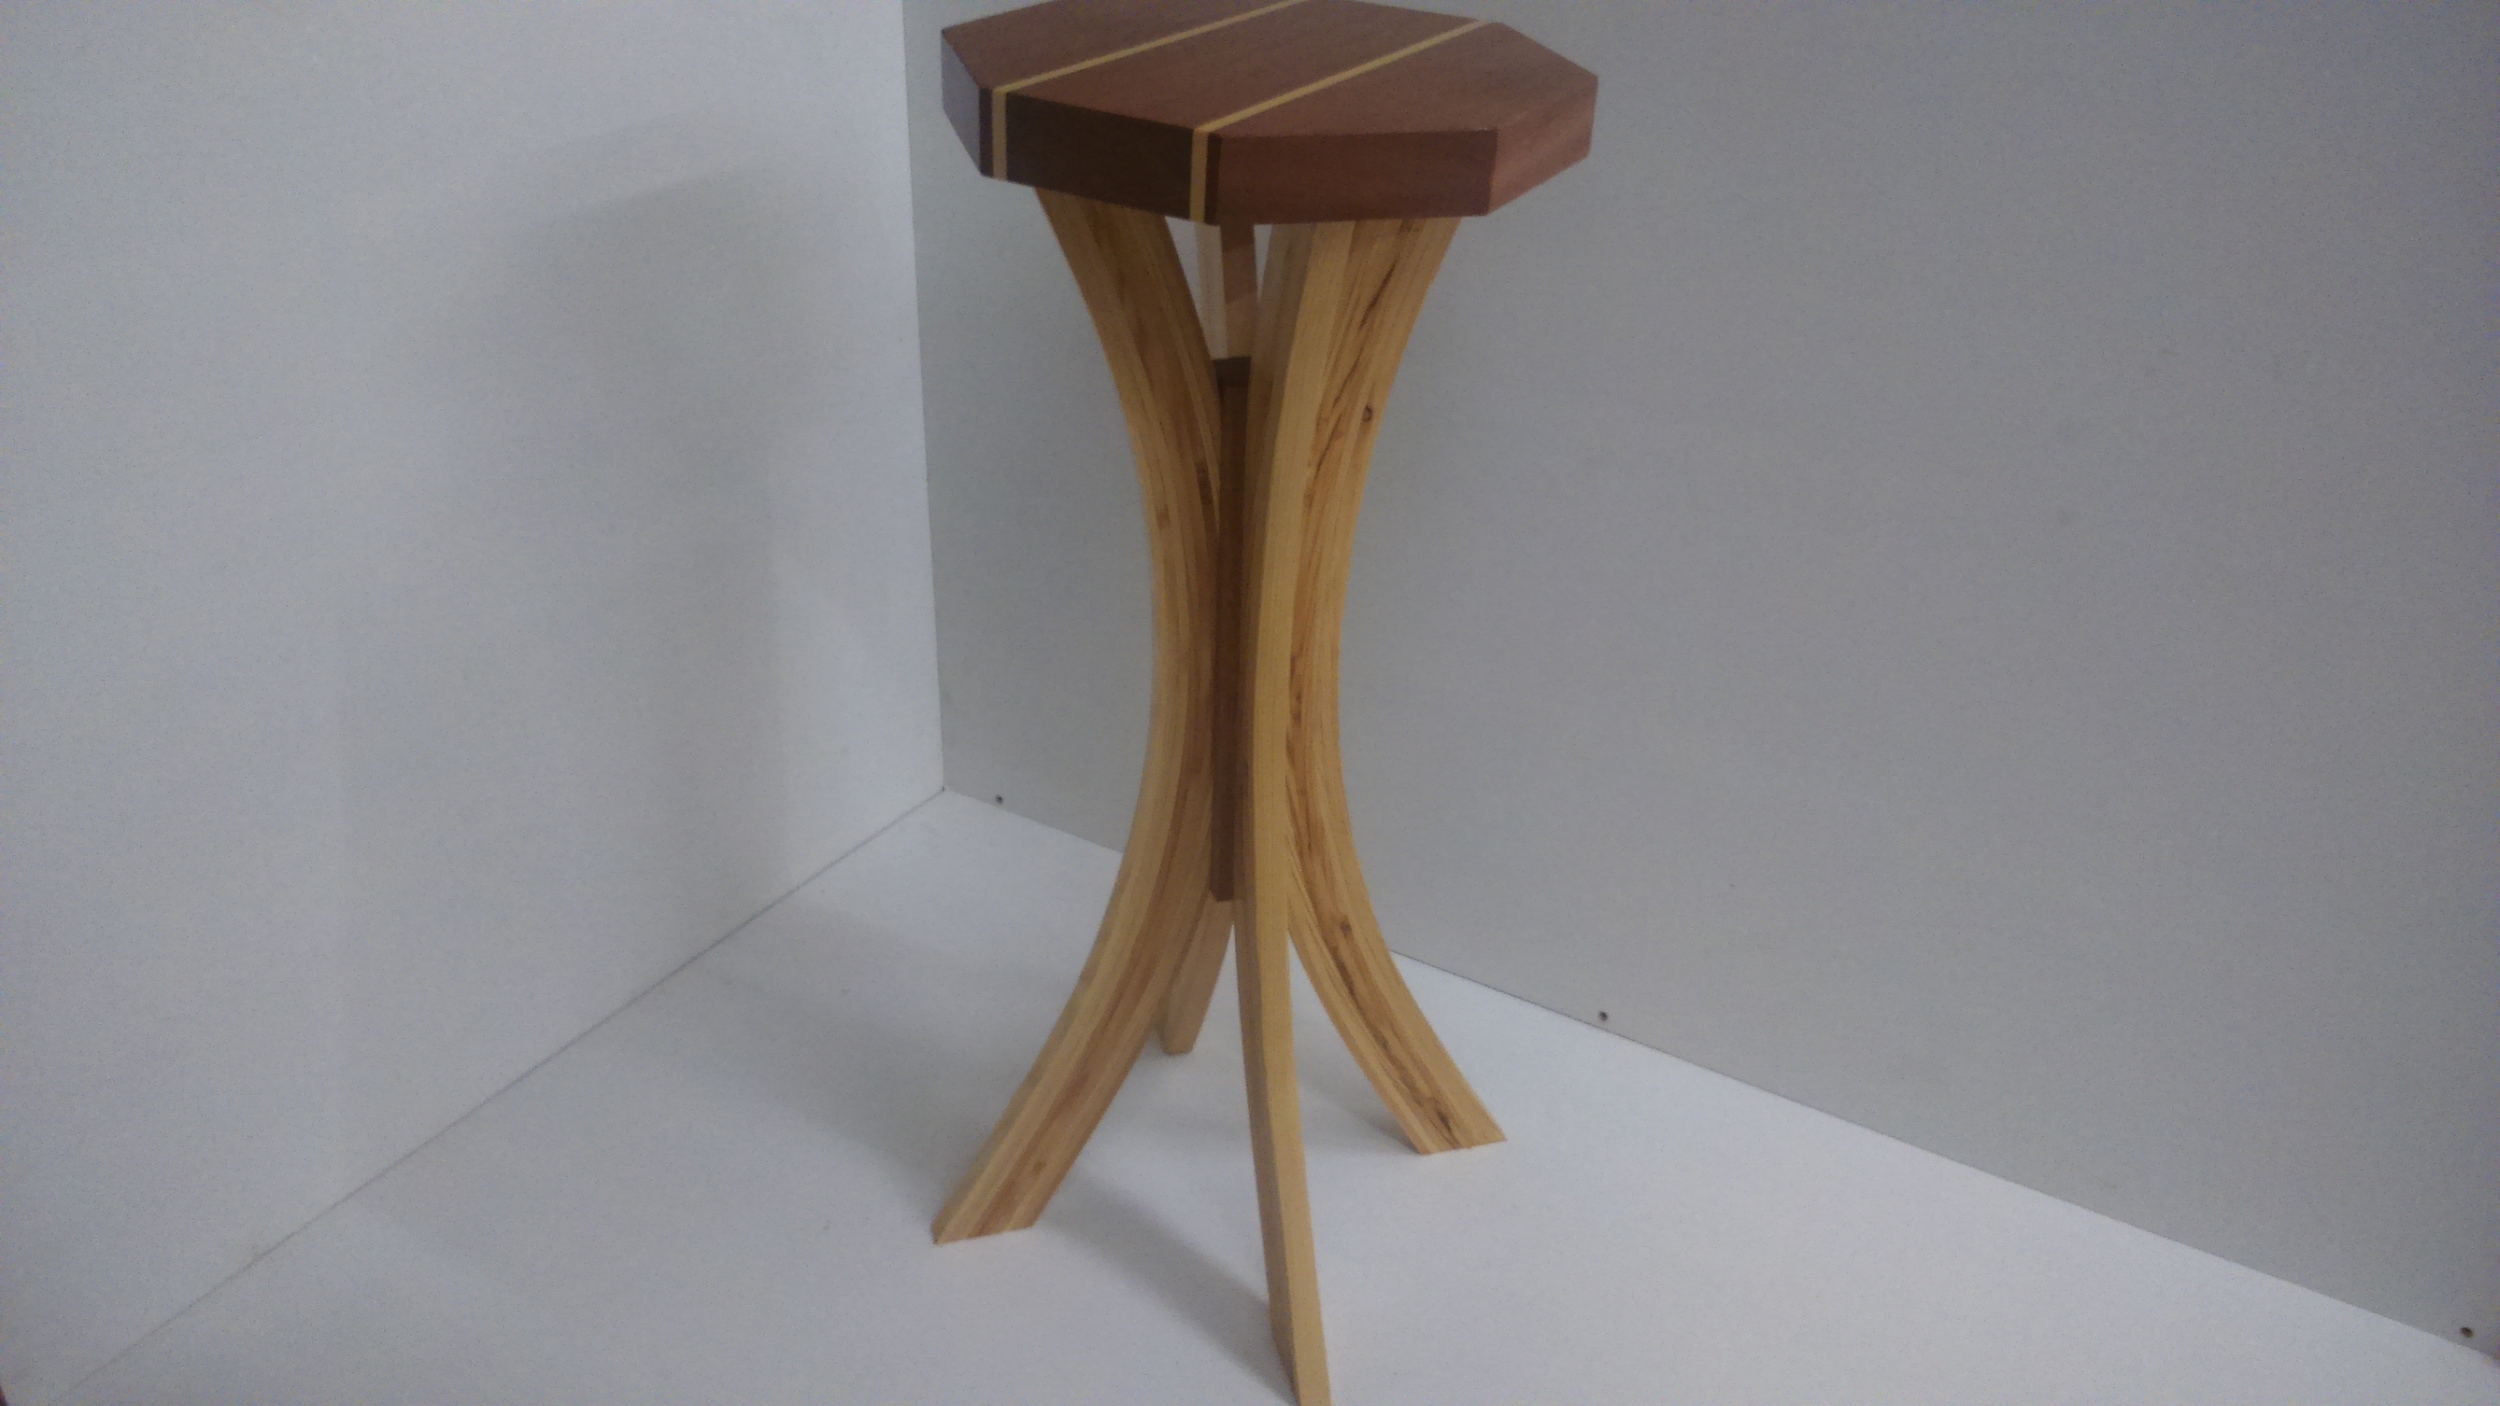 Just experimenting here, it needs foot rests, or just to be made shorter.